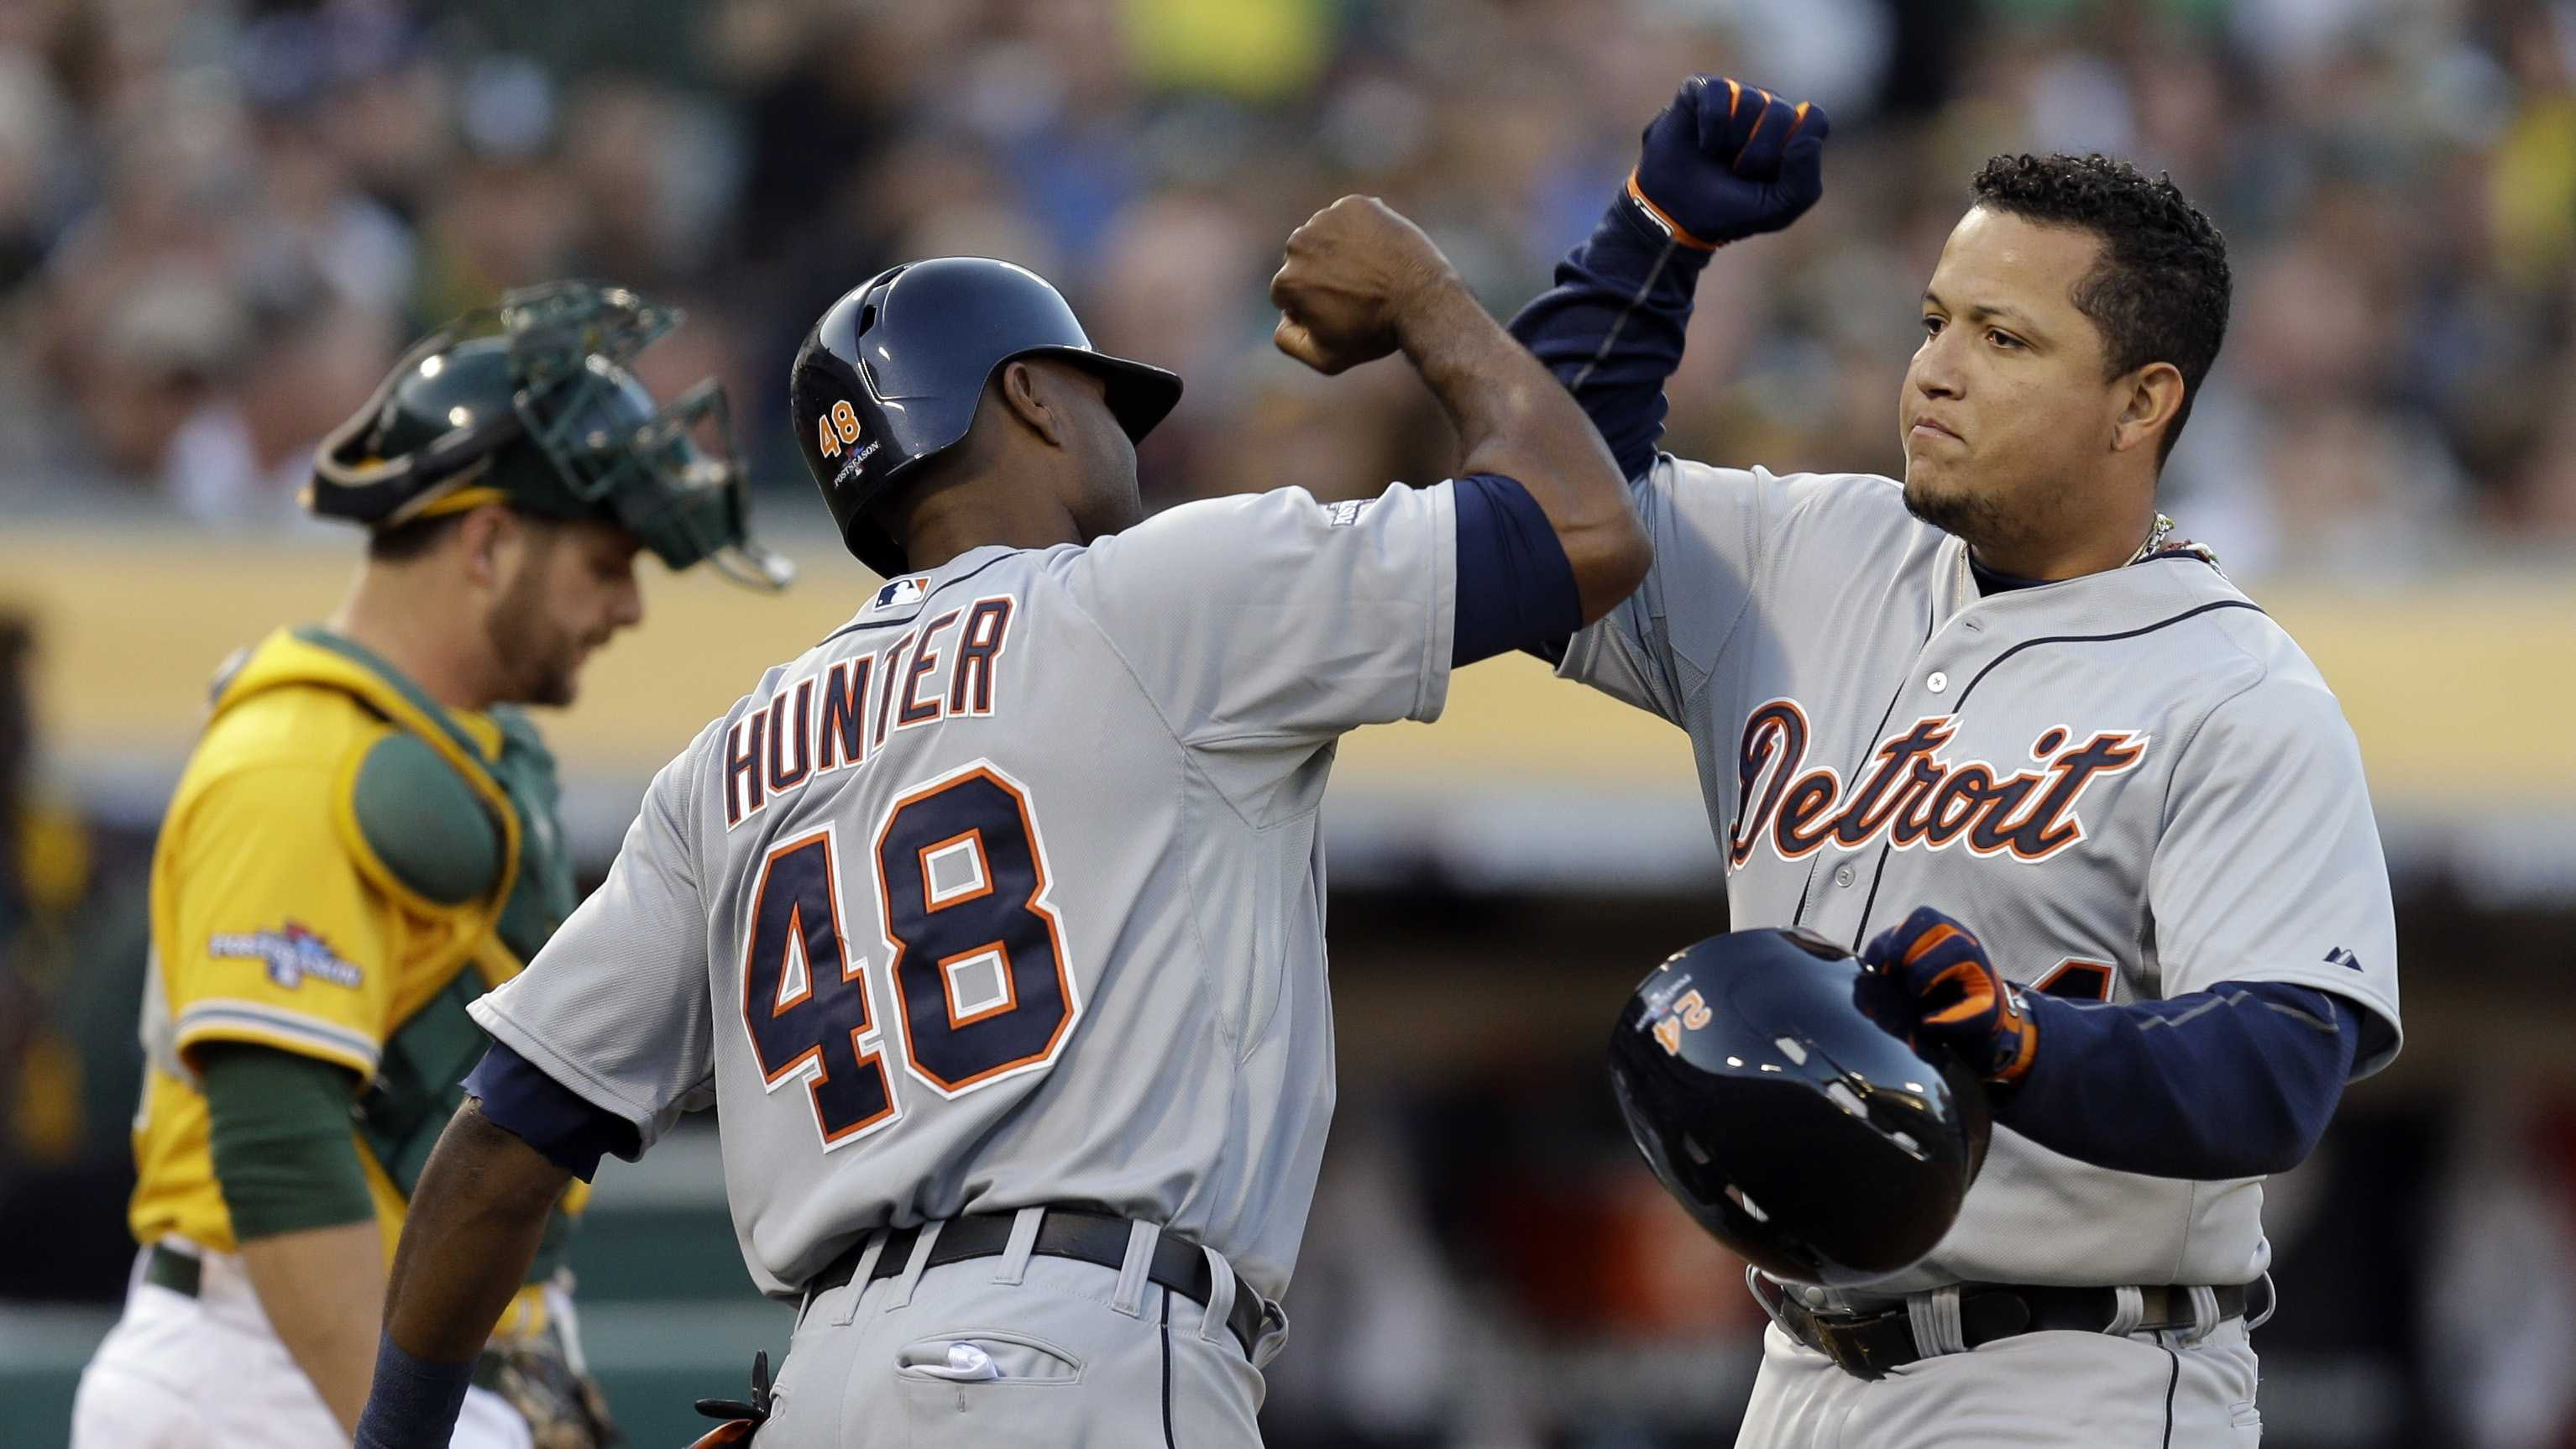 Detroit Tigers Miguel Cabrera (24) celebrates with teammate Torii Hunter (48) after he scored a two run home run that also scored Hunter in the fourth inning of Game 5 of an American League baseball division series against the Oakland Athletics in Oakland, Calif., Thursday, Oct. 10, 2013.